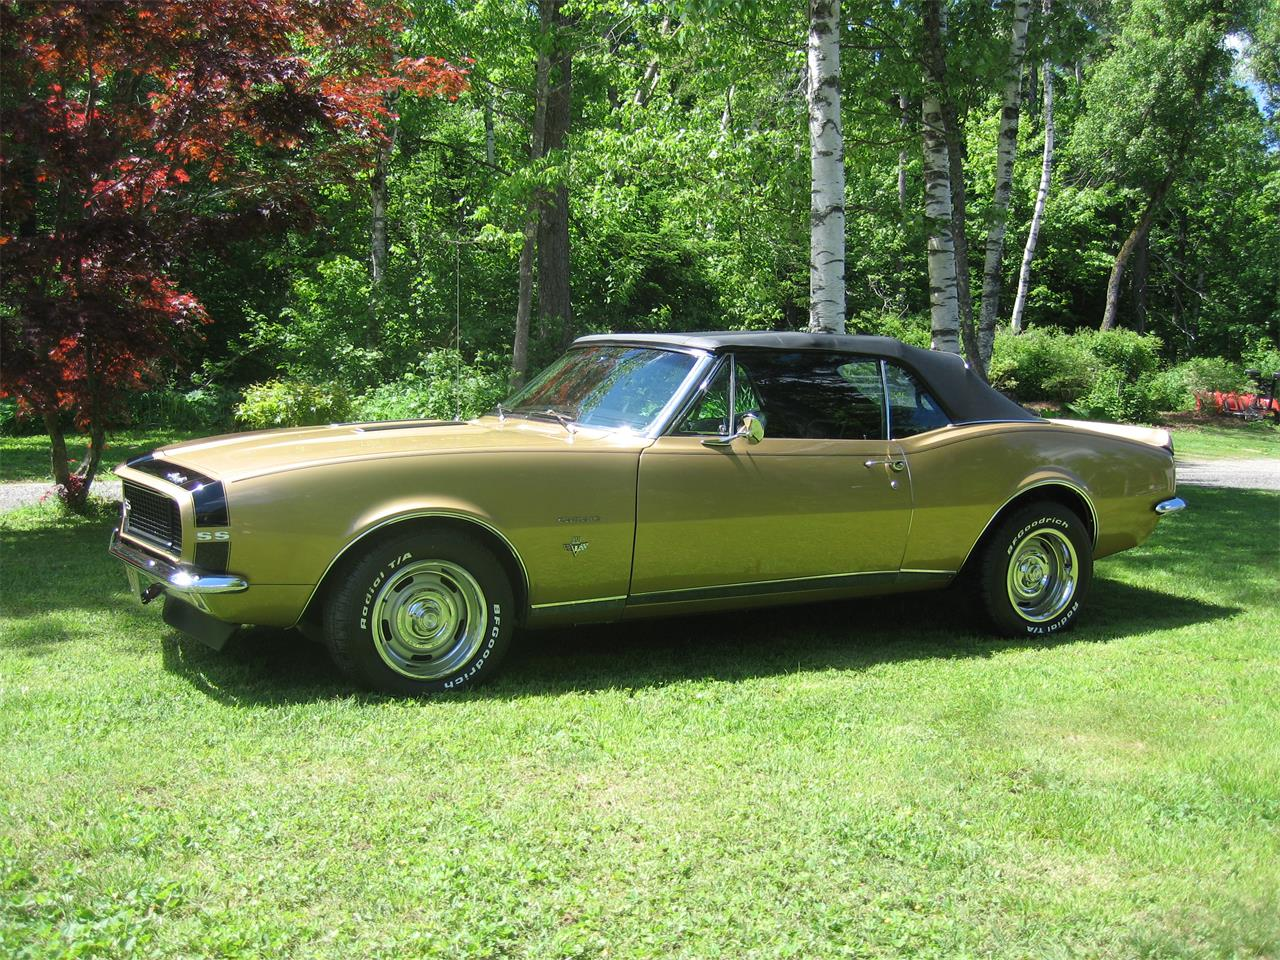 1967 Chevrolet Camaro RS/SS (CC-1216914) for sale in Hinsdale, Massachusetts